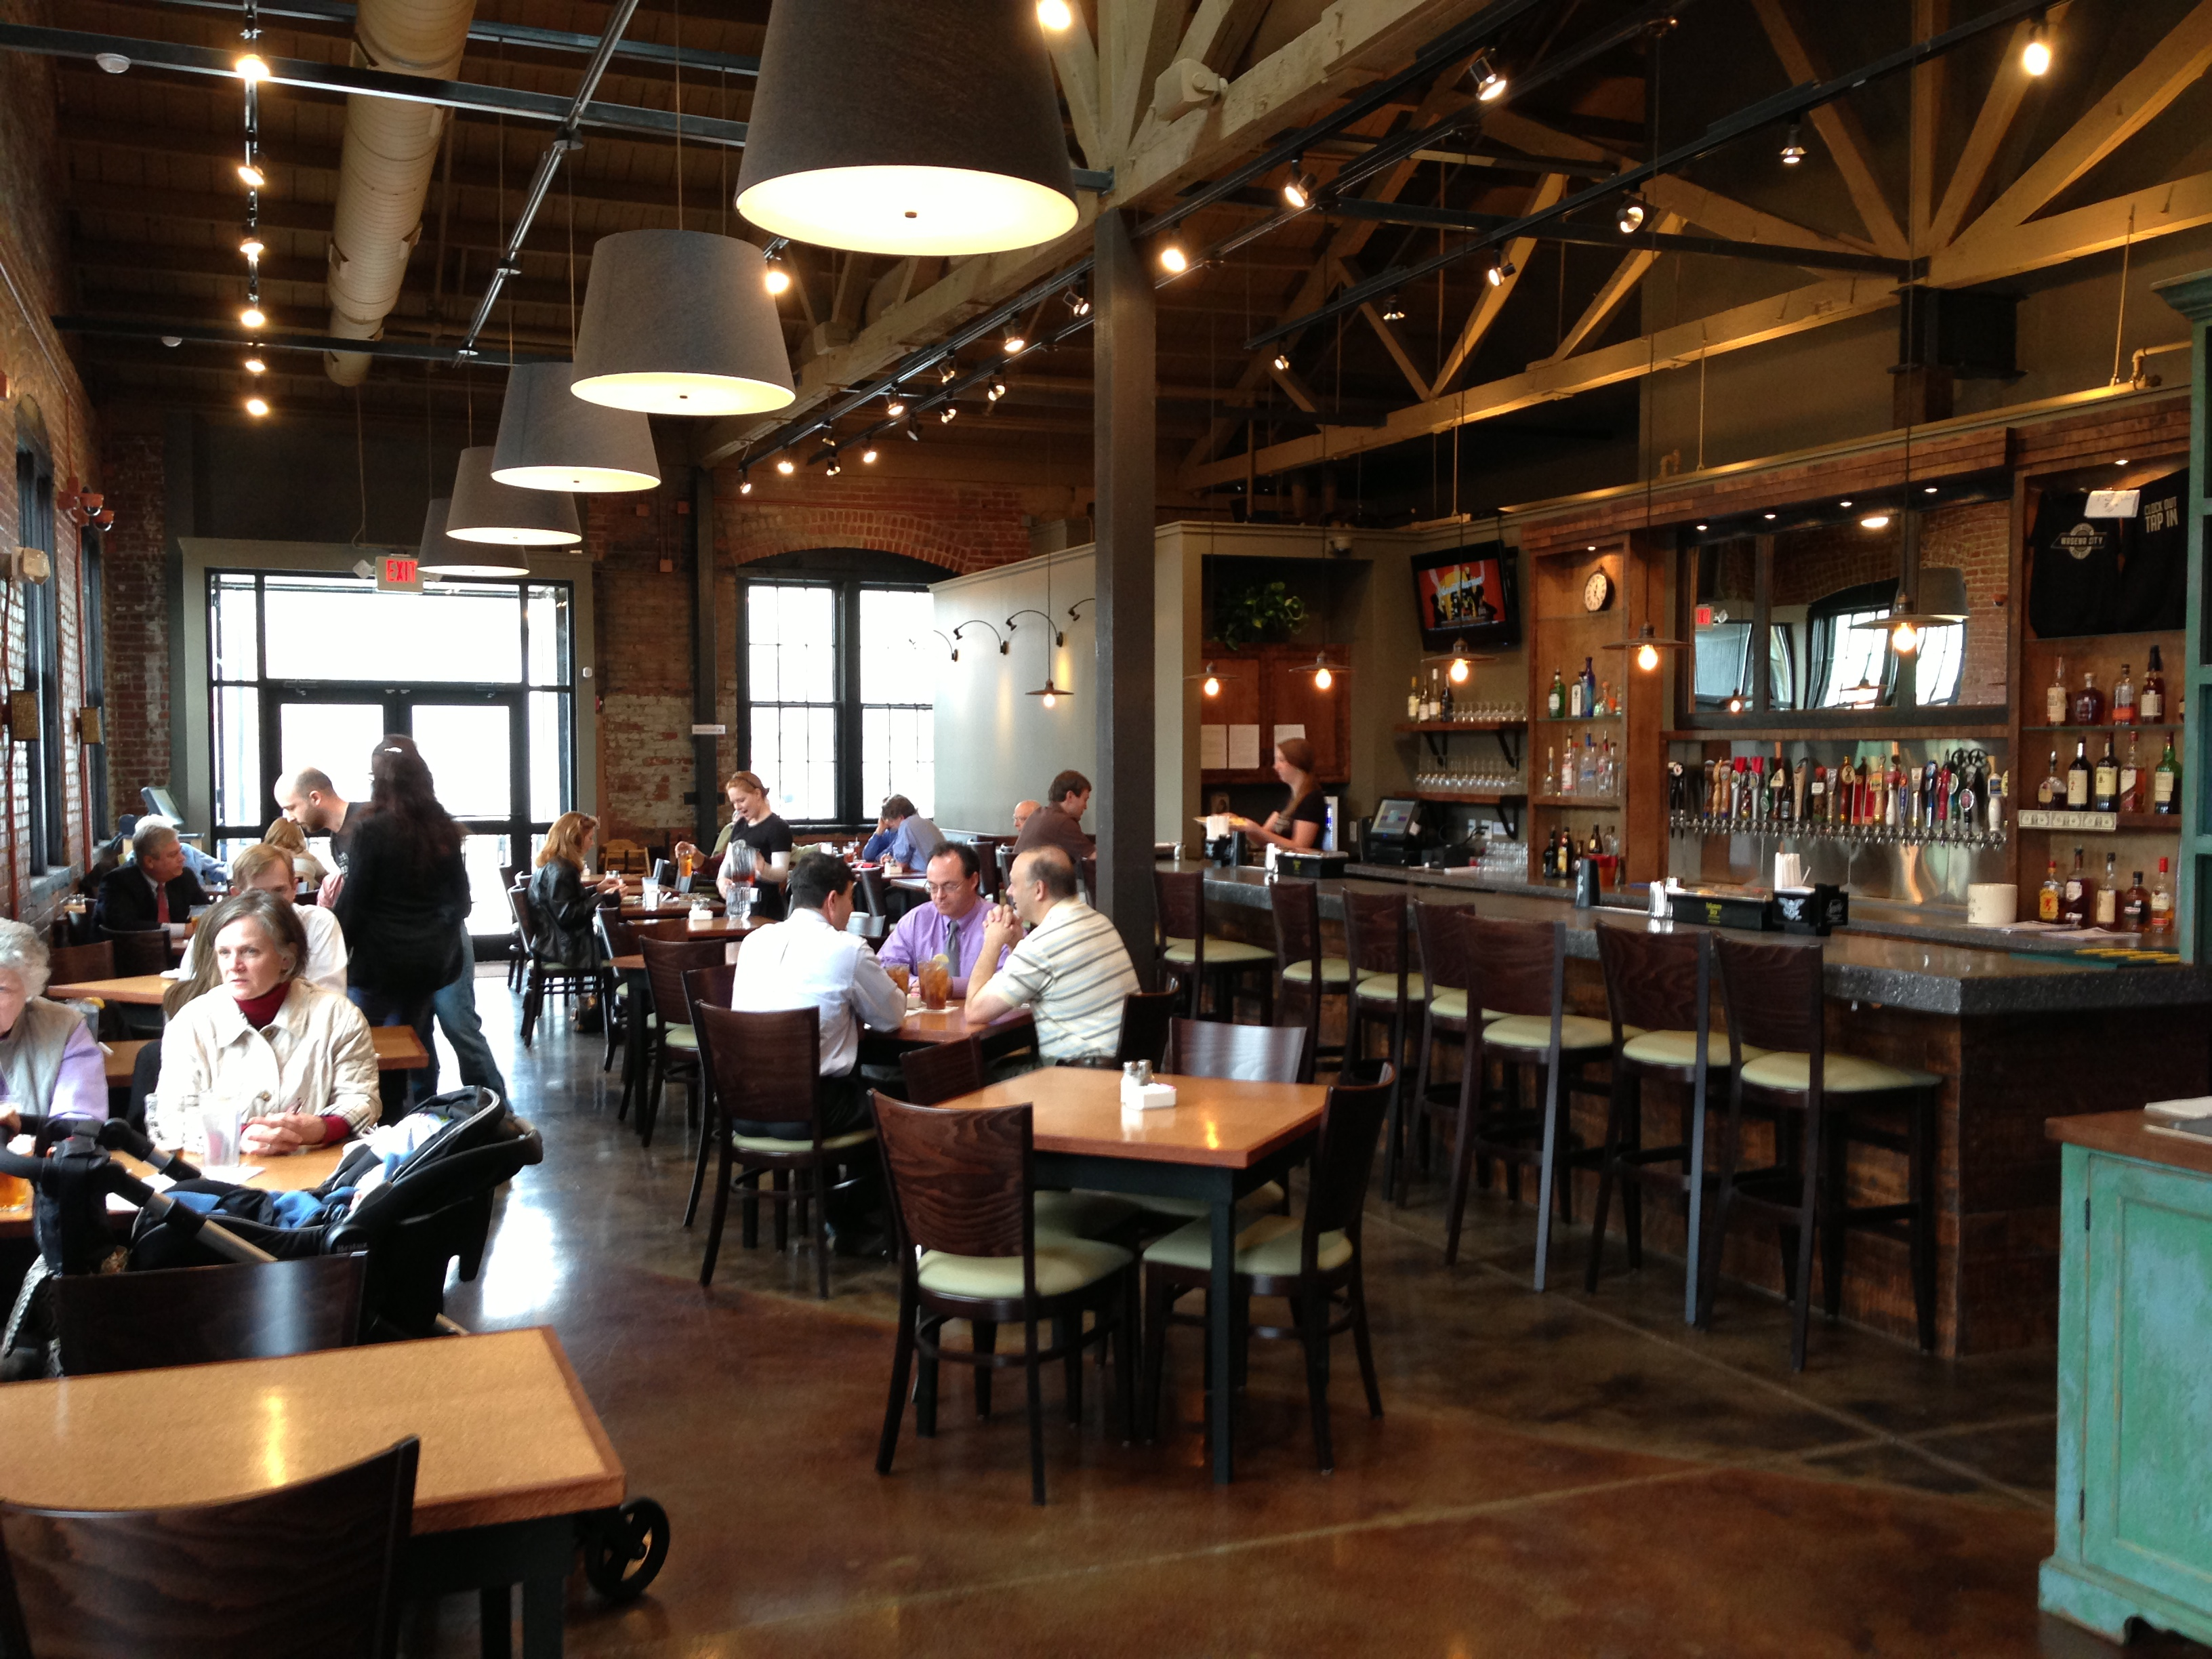 Wasena City Tap Room And Grill Review Roanoke Va